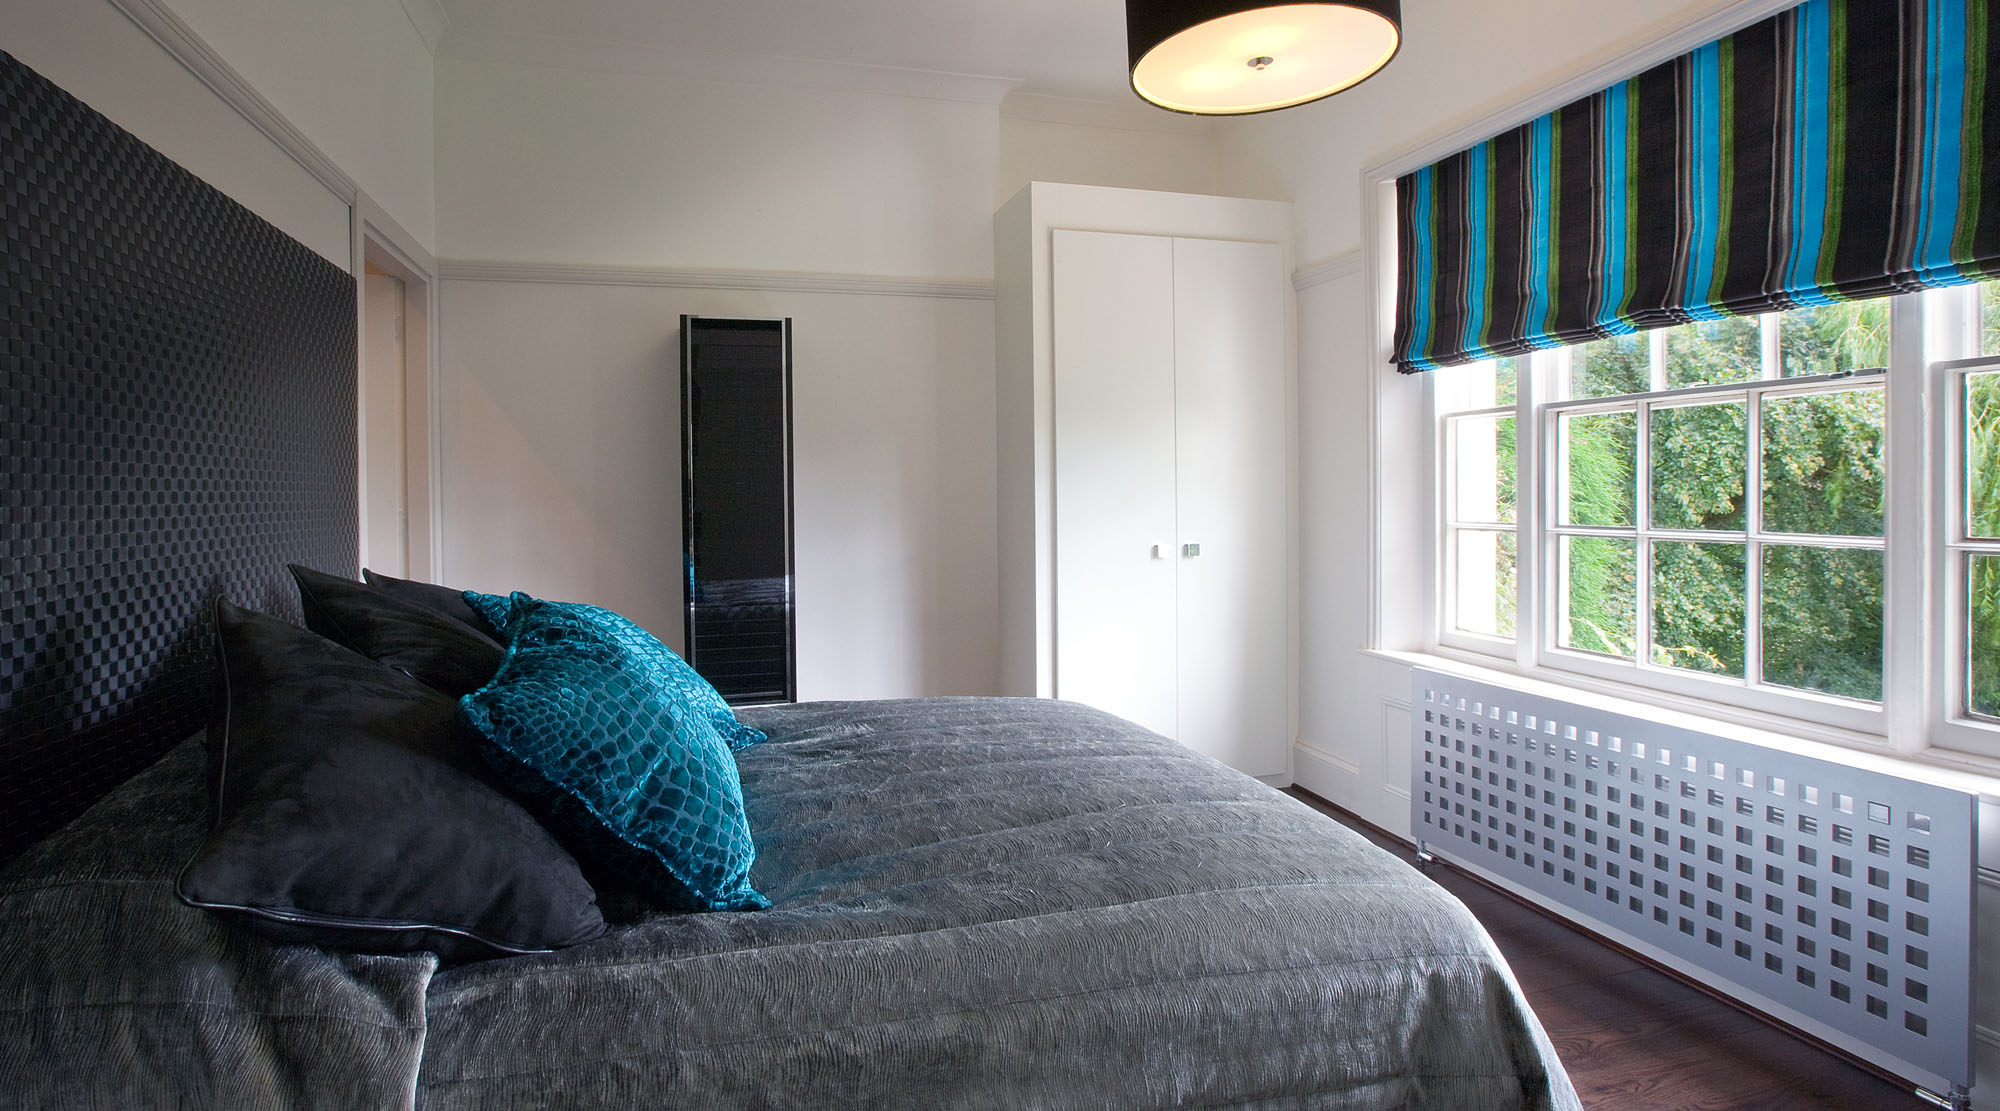 Turquoise, grey and black bedroom